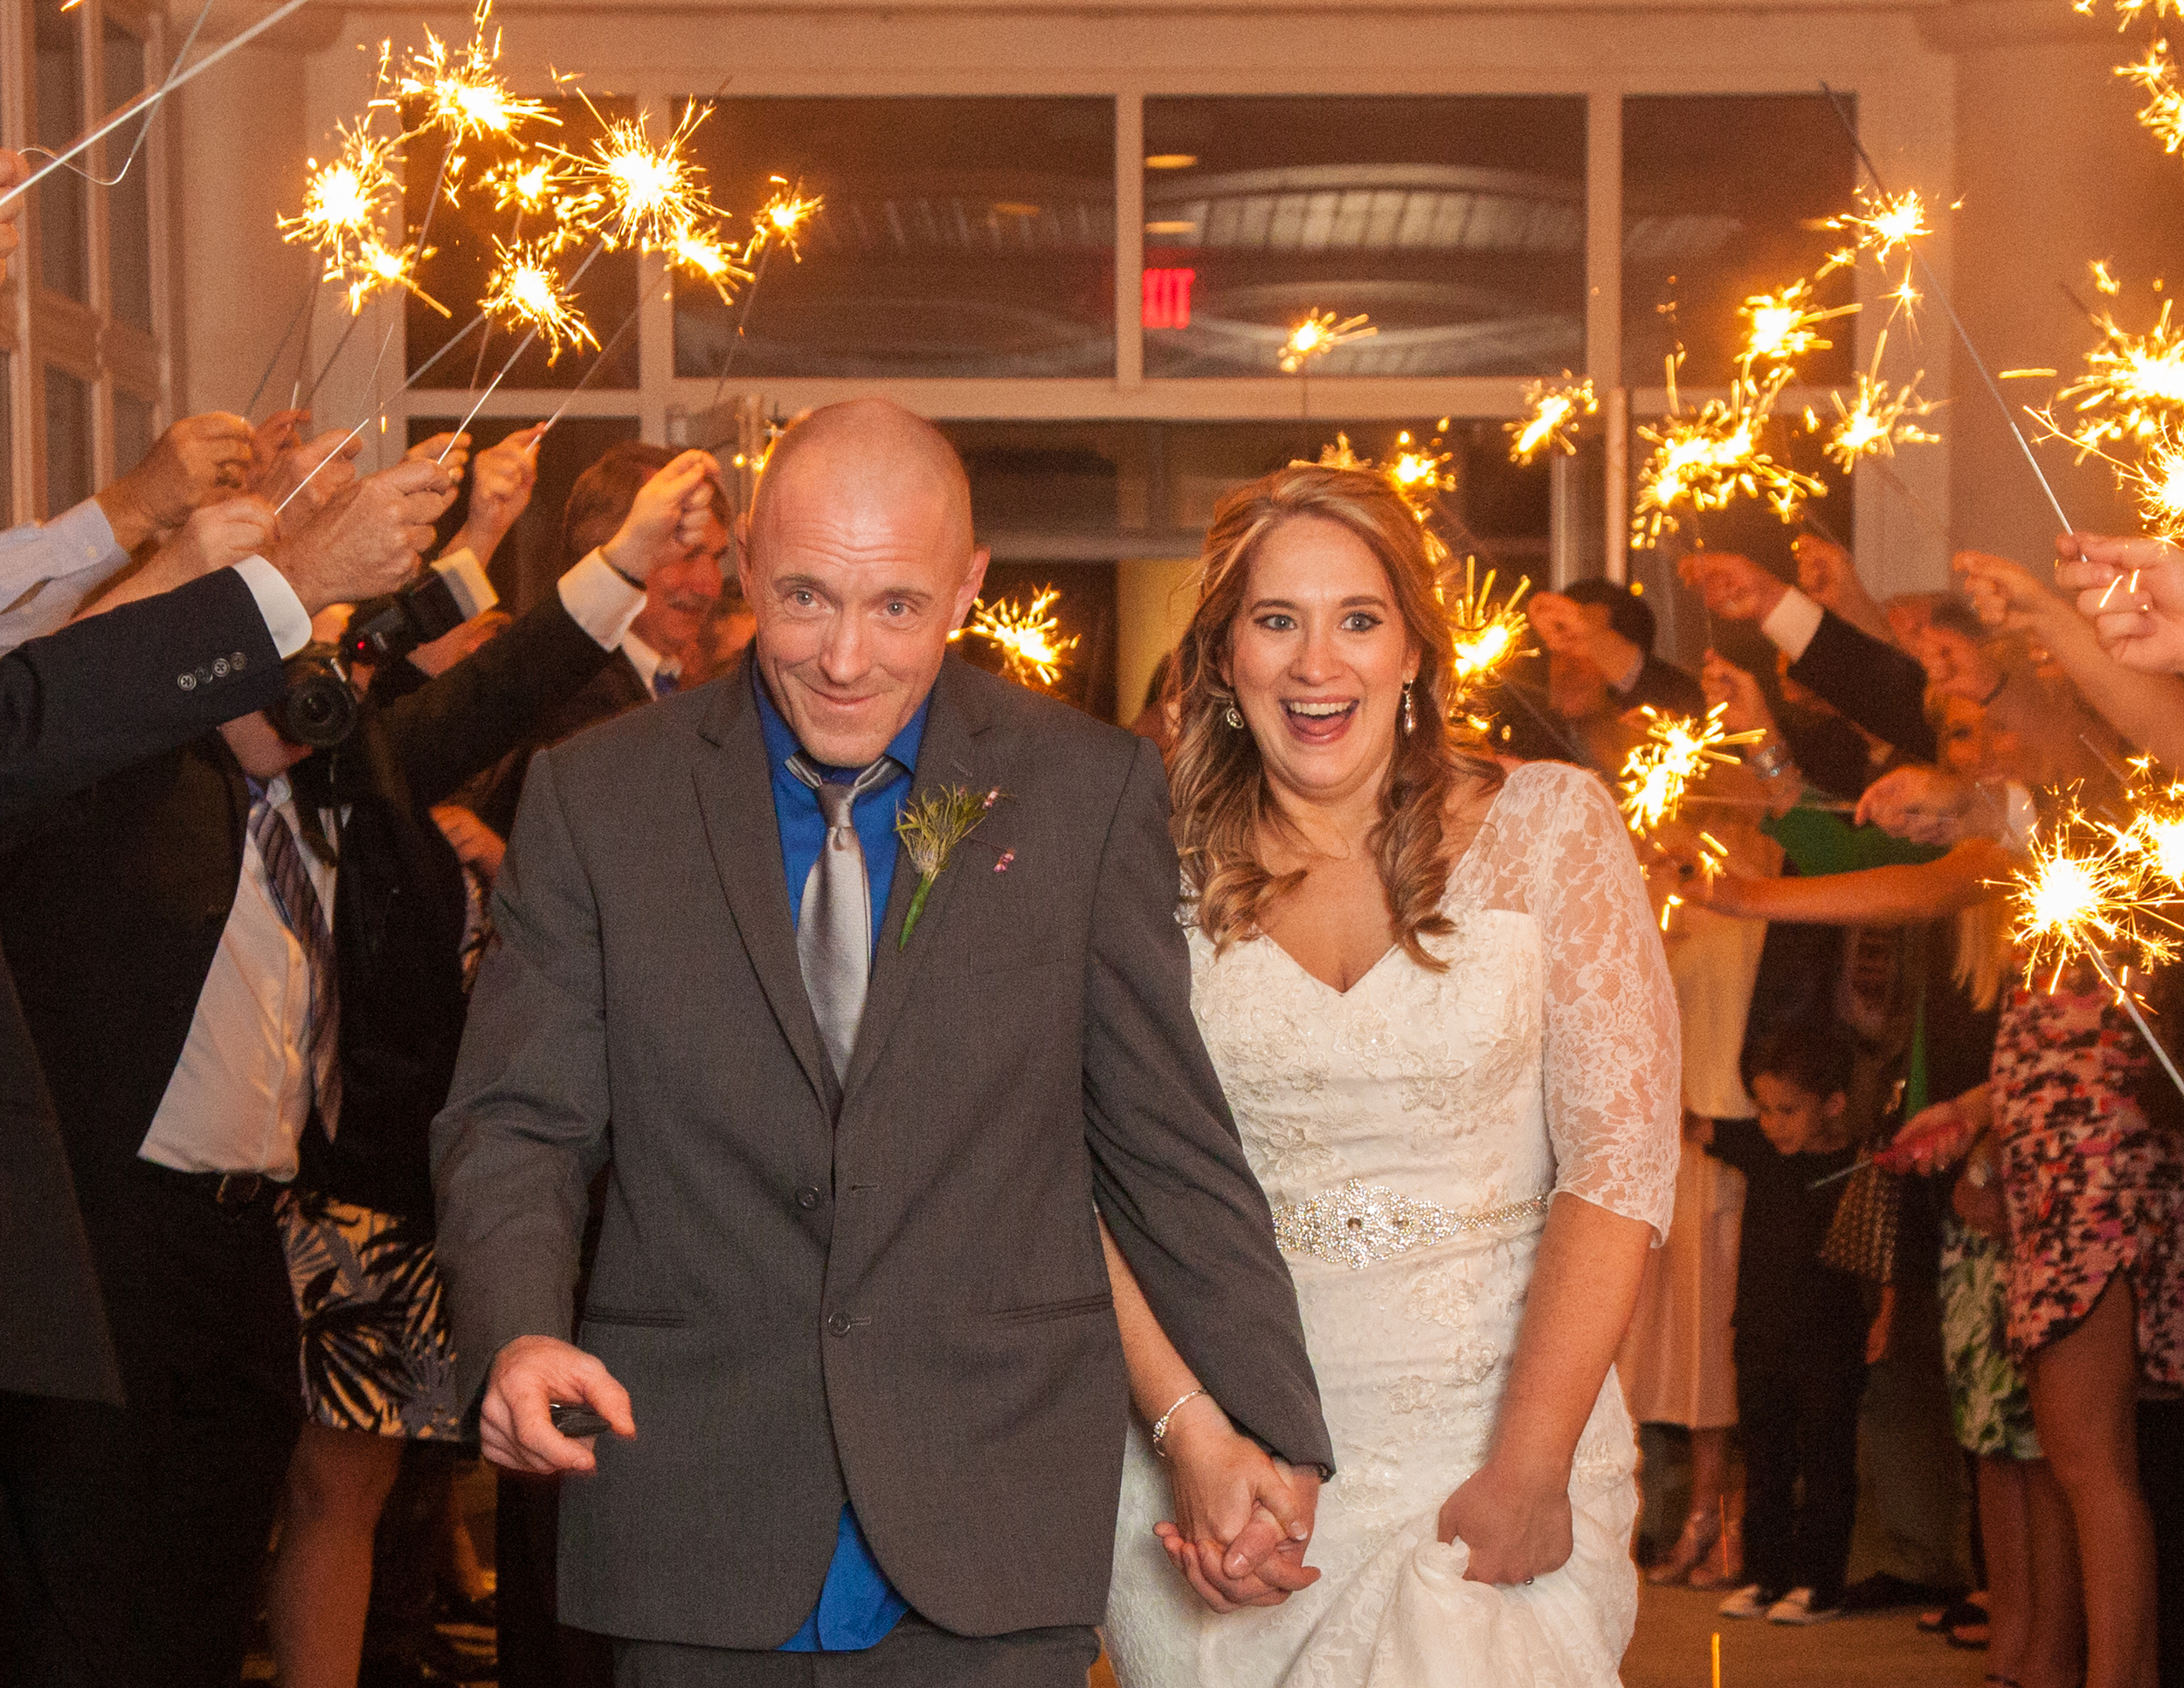 Husband and wife make their grand exit through a tunnel of sparklers leading to their getaway car.